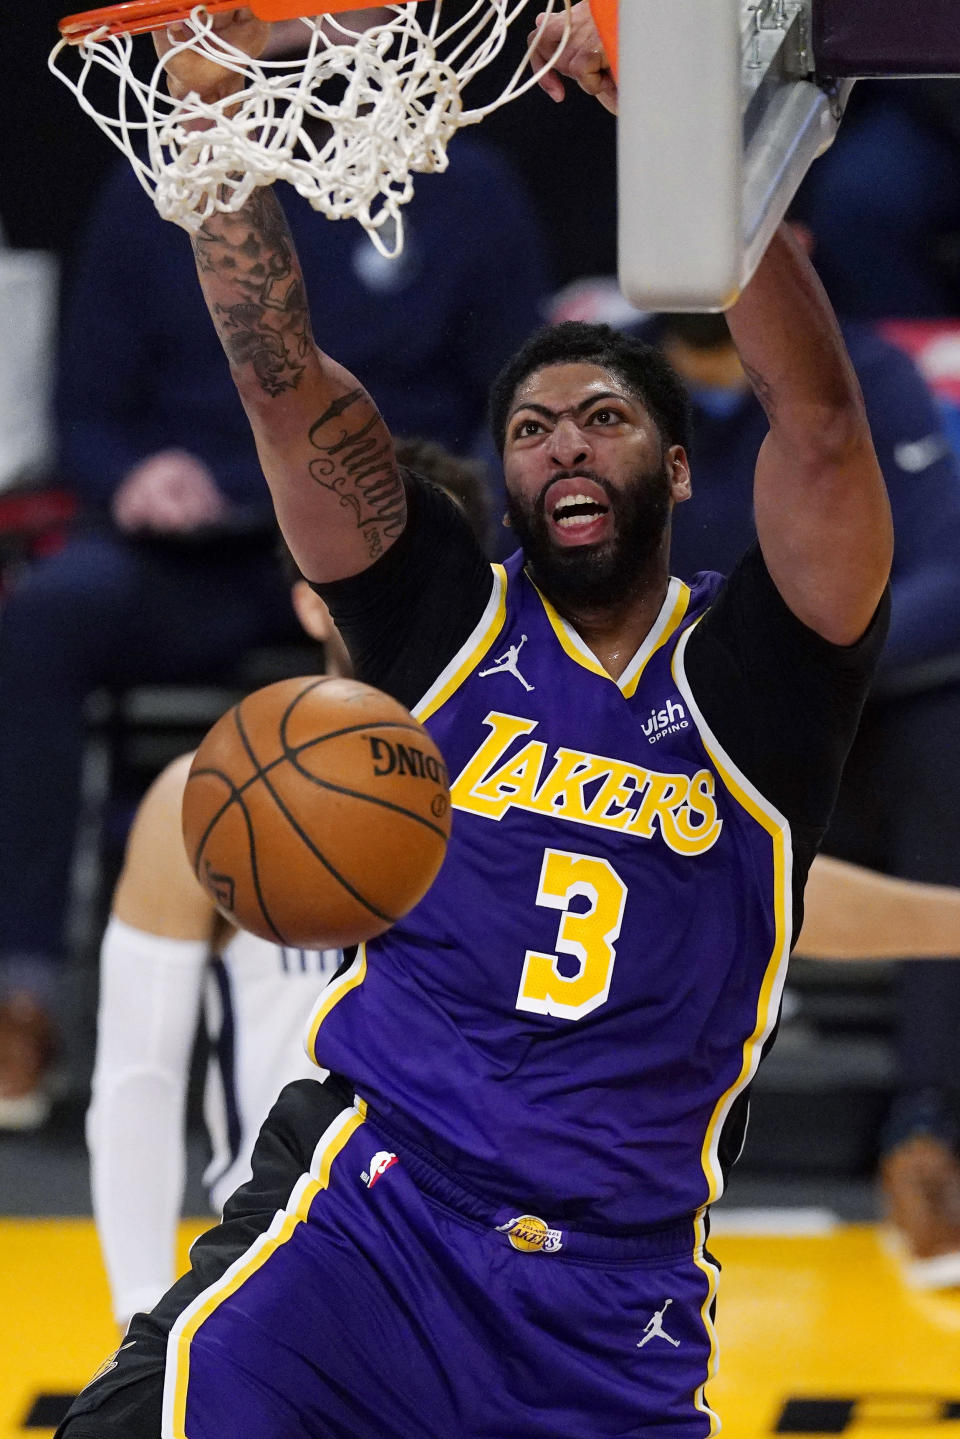 Los Angeles Lakers forward Anthony Davis dunks during the first half of the team's NBA basketball game against the Memphis Grizzlies on Friday, Feb. 12, 2021, in Los Angeles. (AP Photo/Mark J. Terrill)